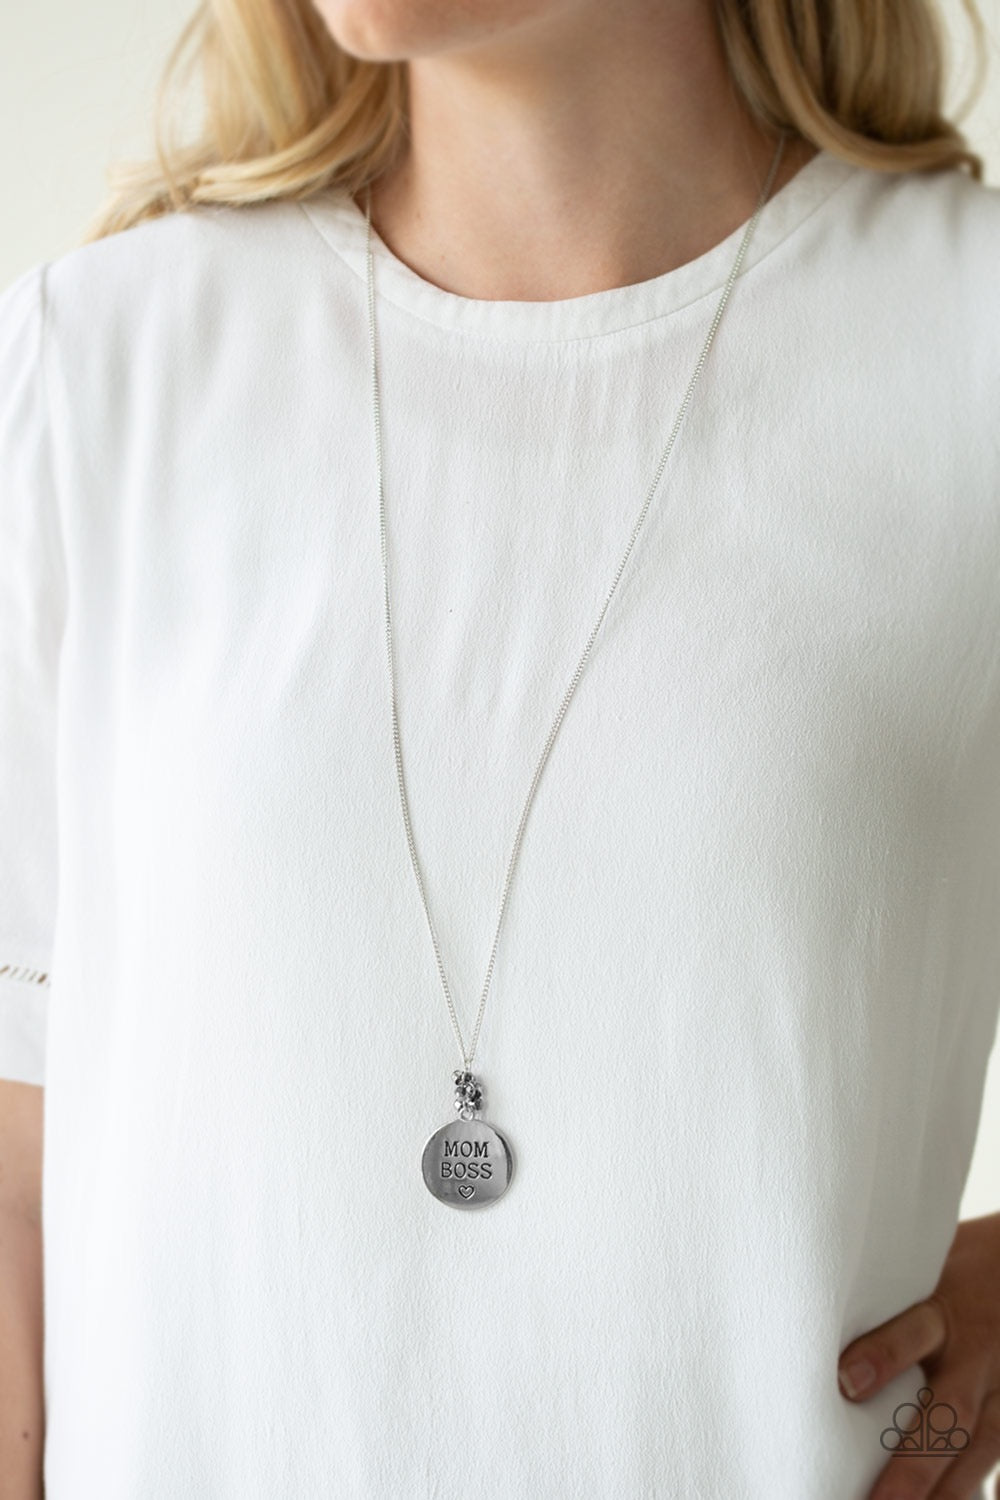 Mom Boss - Silver Necklace 2573N